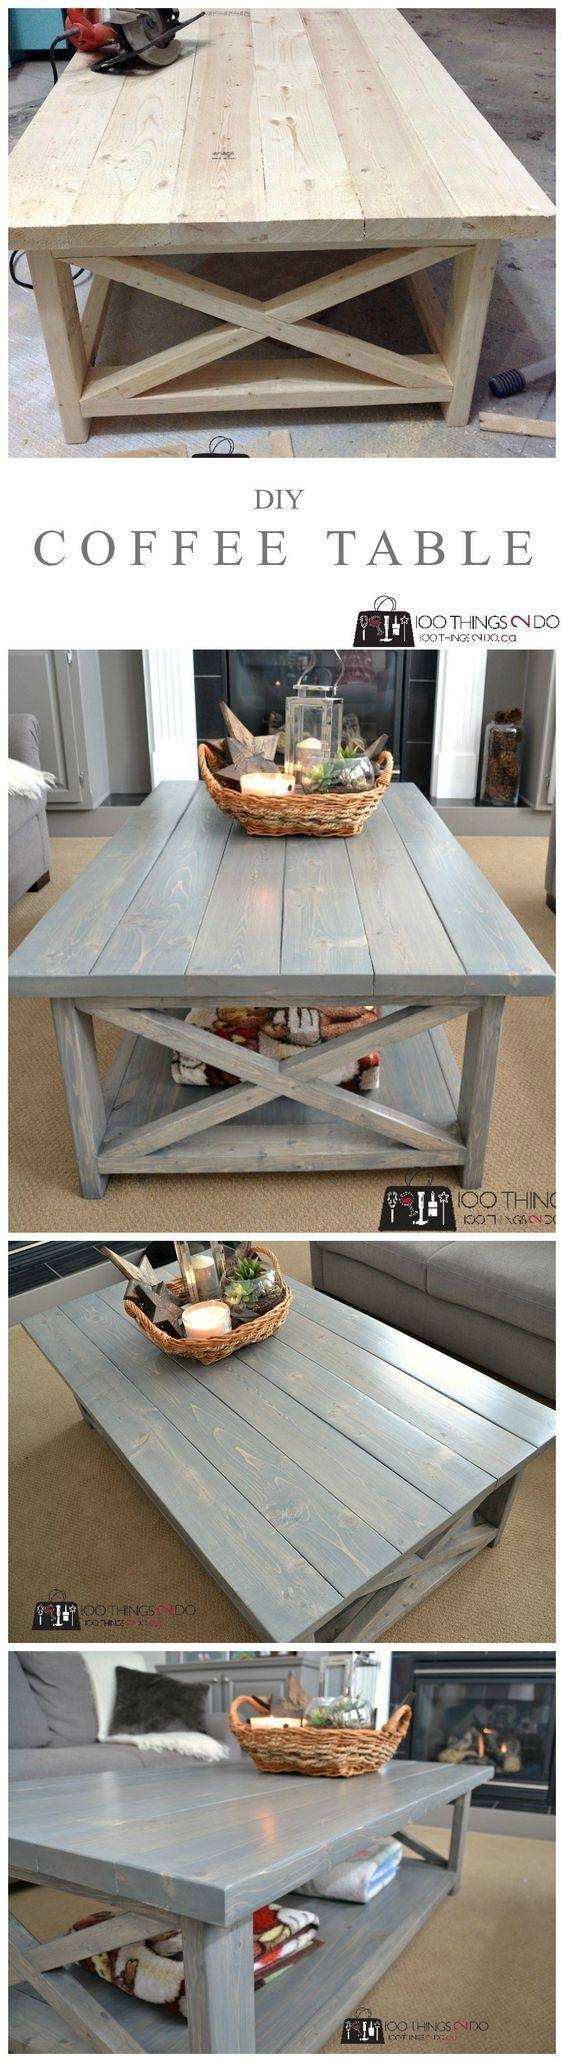 Best 25+ Barnwood Coffee Table Ideas Only On Pinterest | Dark Wood pertaining to Rustic Barnwood Coffee Tables (Image 3 of 30)